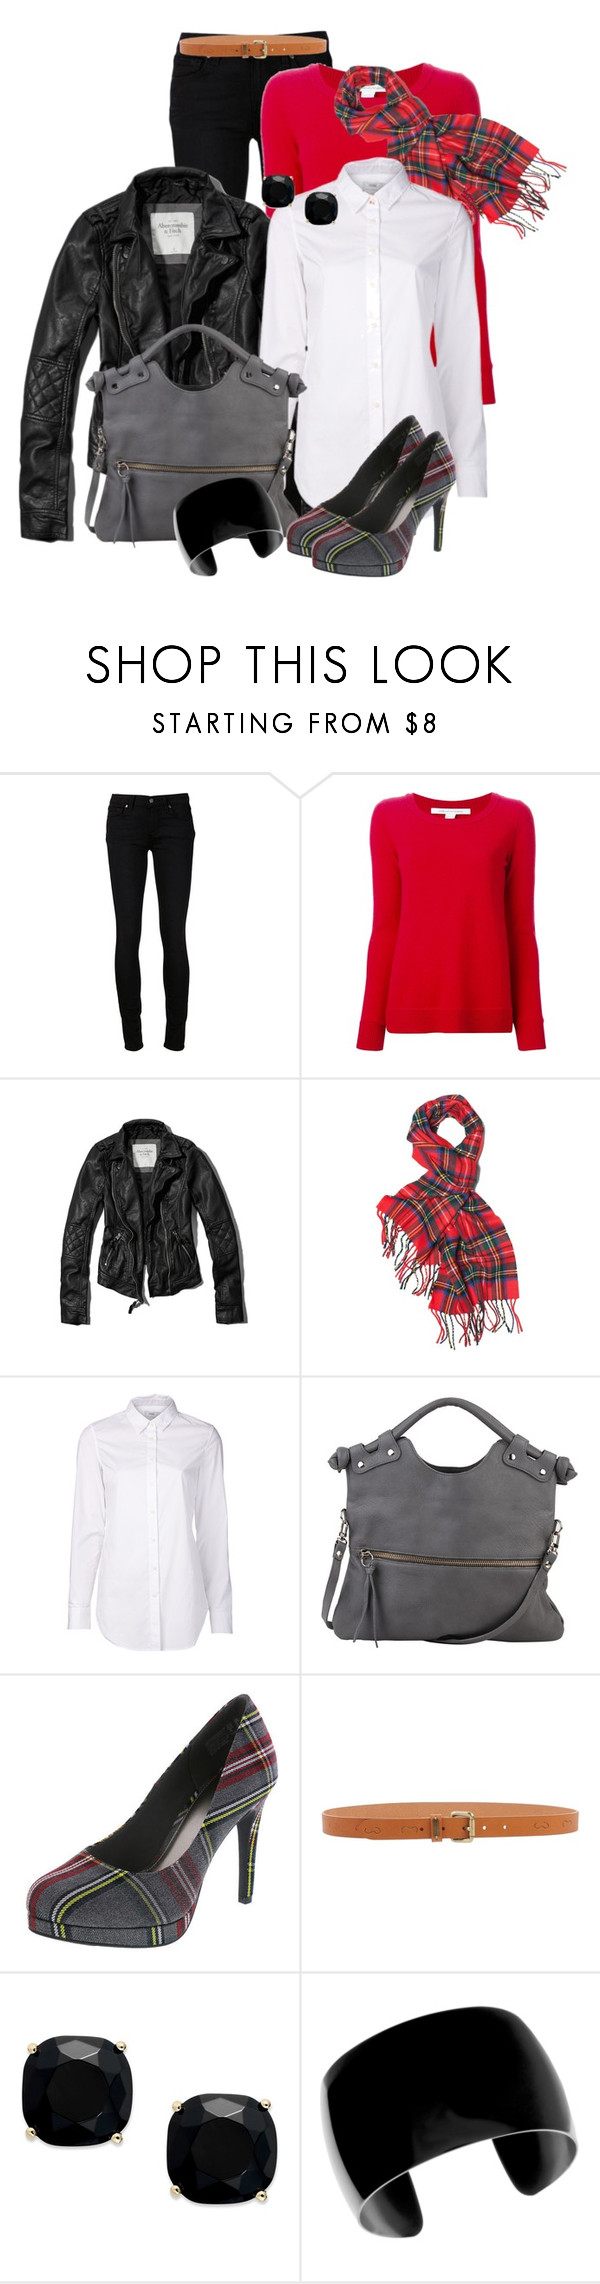 """I got em at Payless"" by debpat ❤ liked on Polyvore featuring Paige Denim, Diane Von Furstenberg, Abercrombie & Fitch, Closed, Pietro Alessandro, Woolrich, Kate Spade, women's clothing, women's fashion and women"